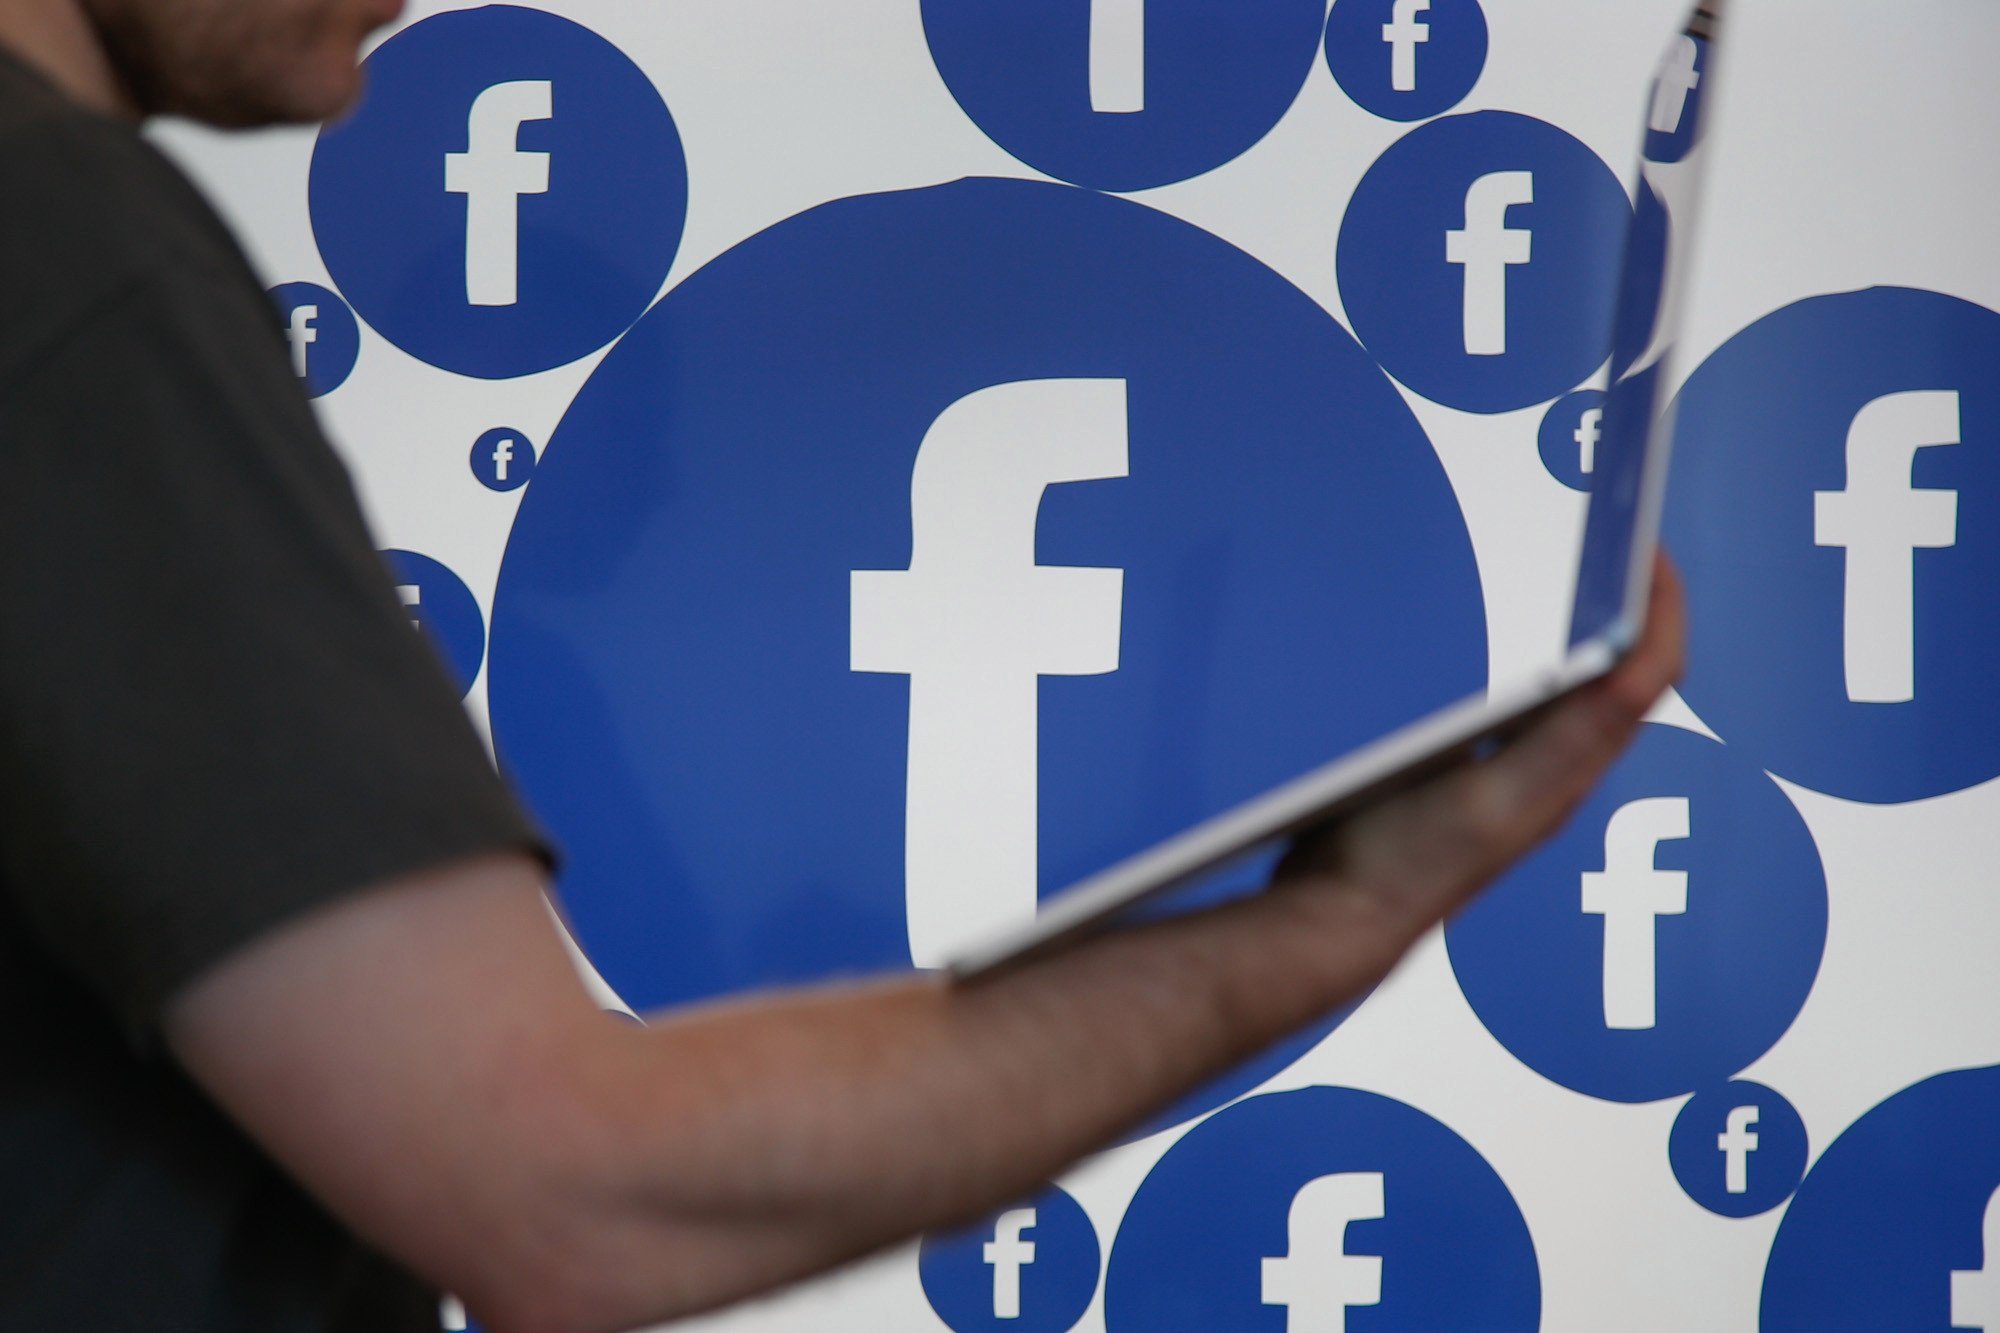 Facebook is trying to make privacy control easier for users